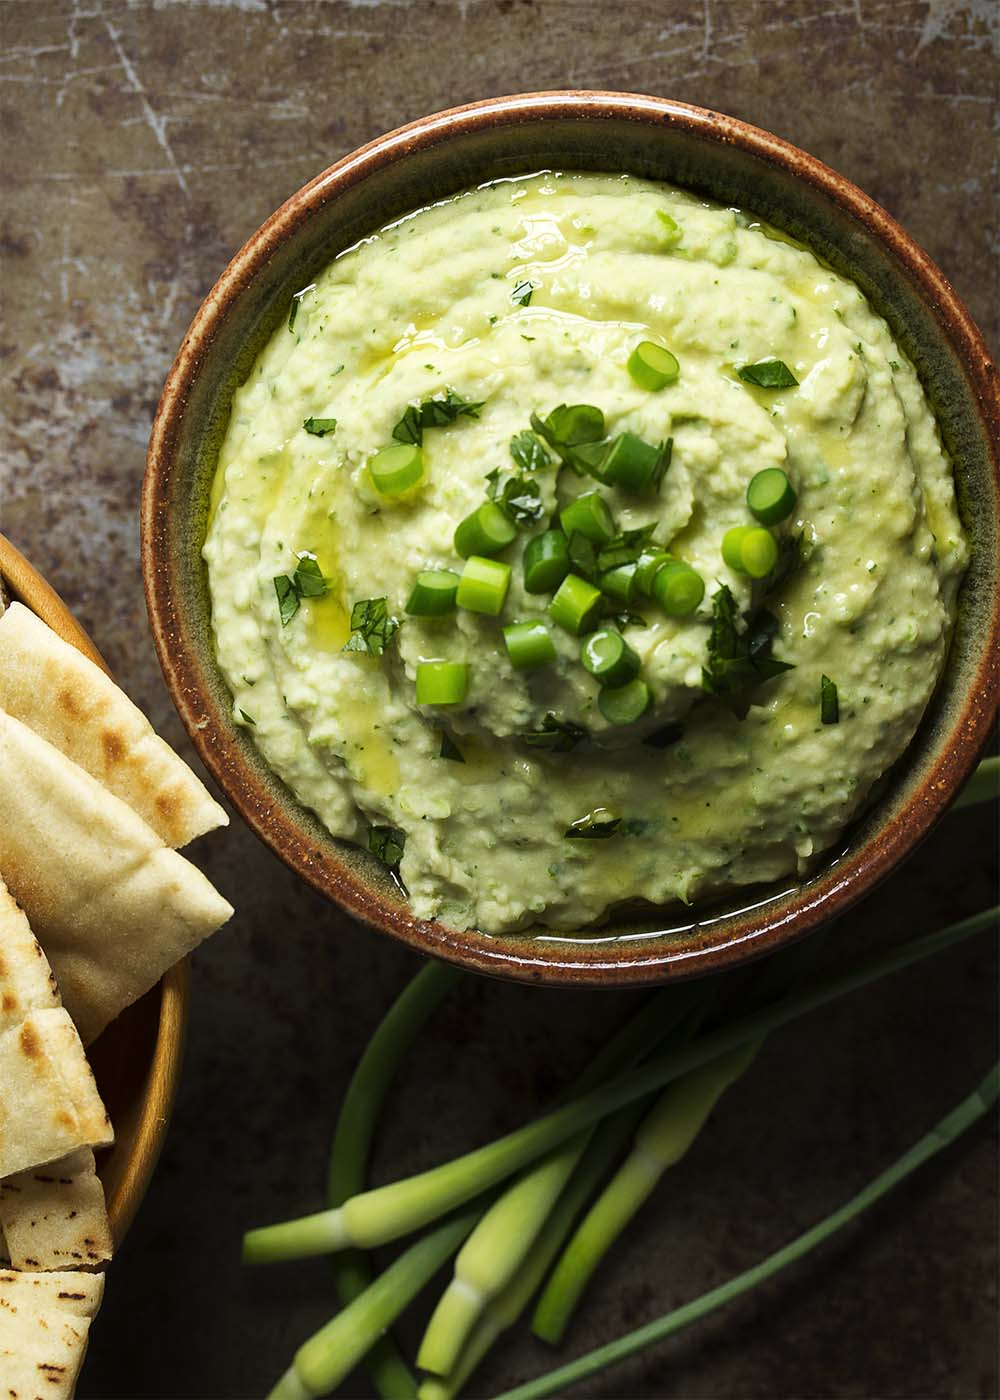 Wondering what to do with garlic scapes? Puree them into a quick and creamy, garlicky bean and garlic scape dip! Great as a healthy snack or for a party! | justalittlebitofbacon.com